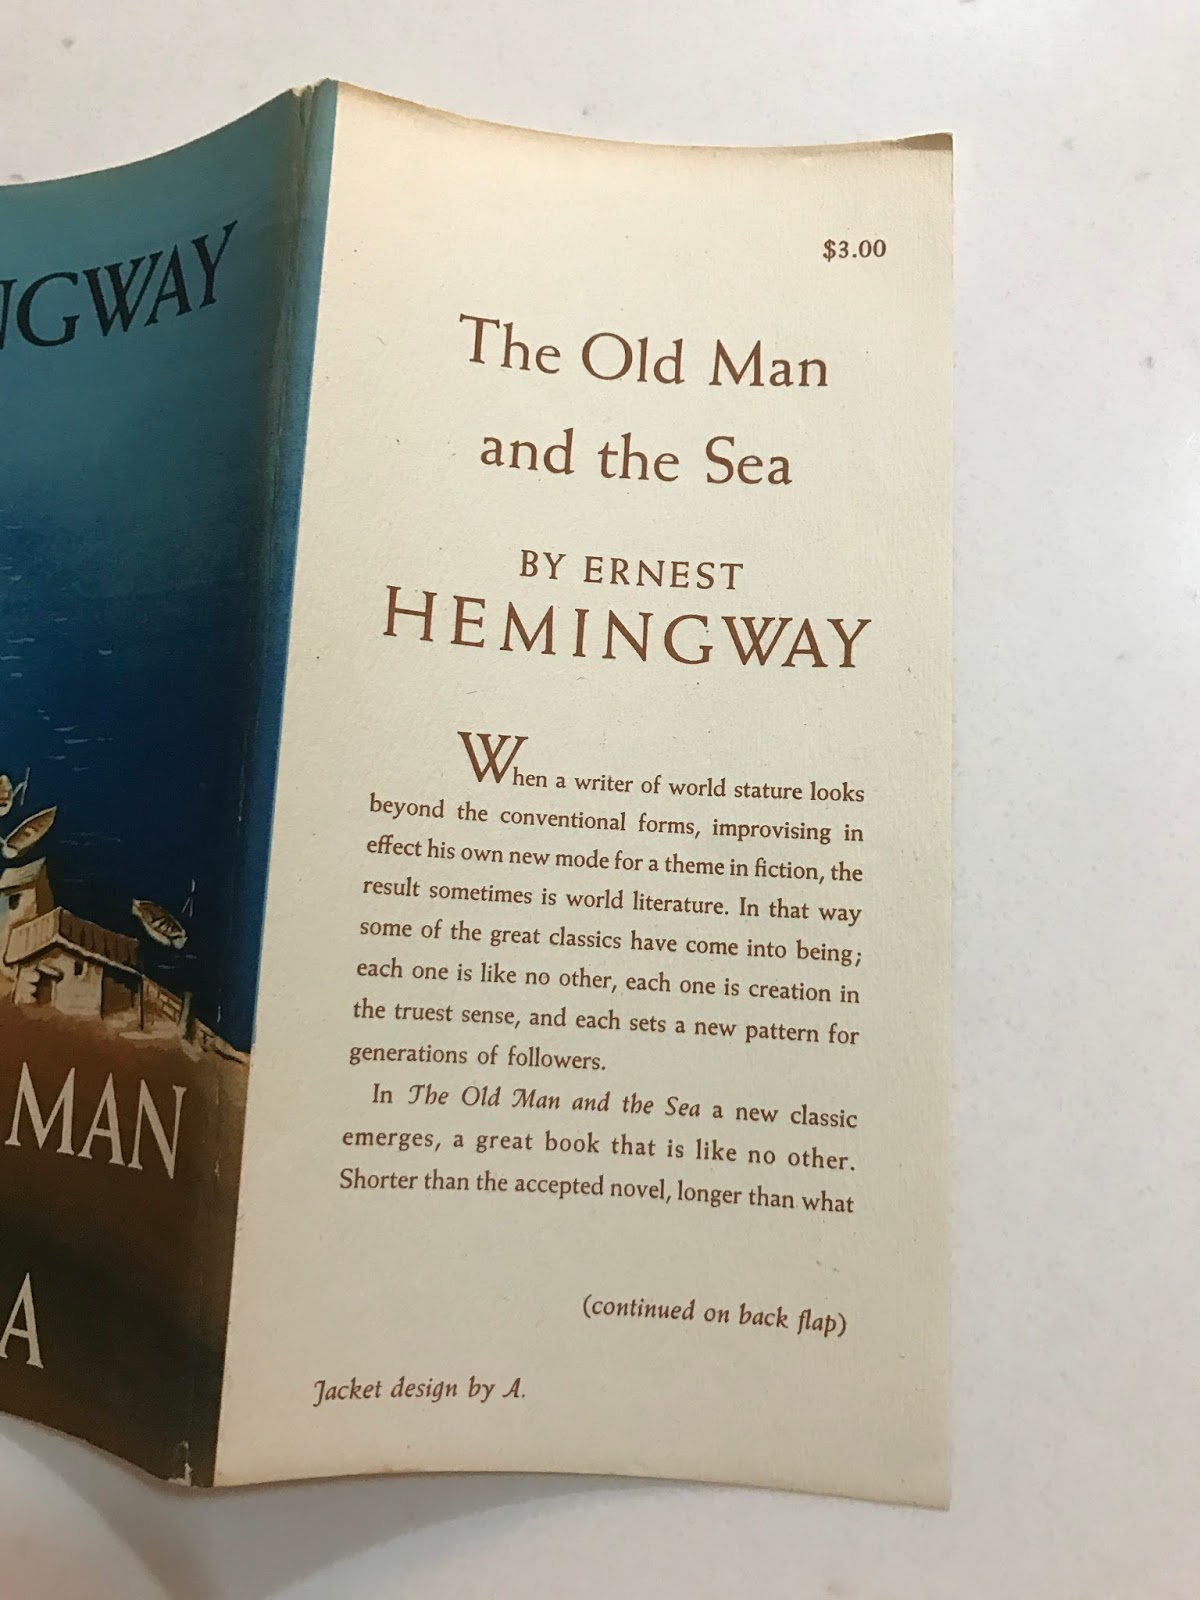 literary analysis of the novel the old man and the sea by ernest hemingway The old man and the sea analysis an analysis on the old man and the sea look into how ernest hemingway focuses on the key issue that there is honor found in struggling toward a goal, even if one does not succeed.